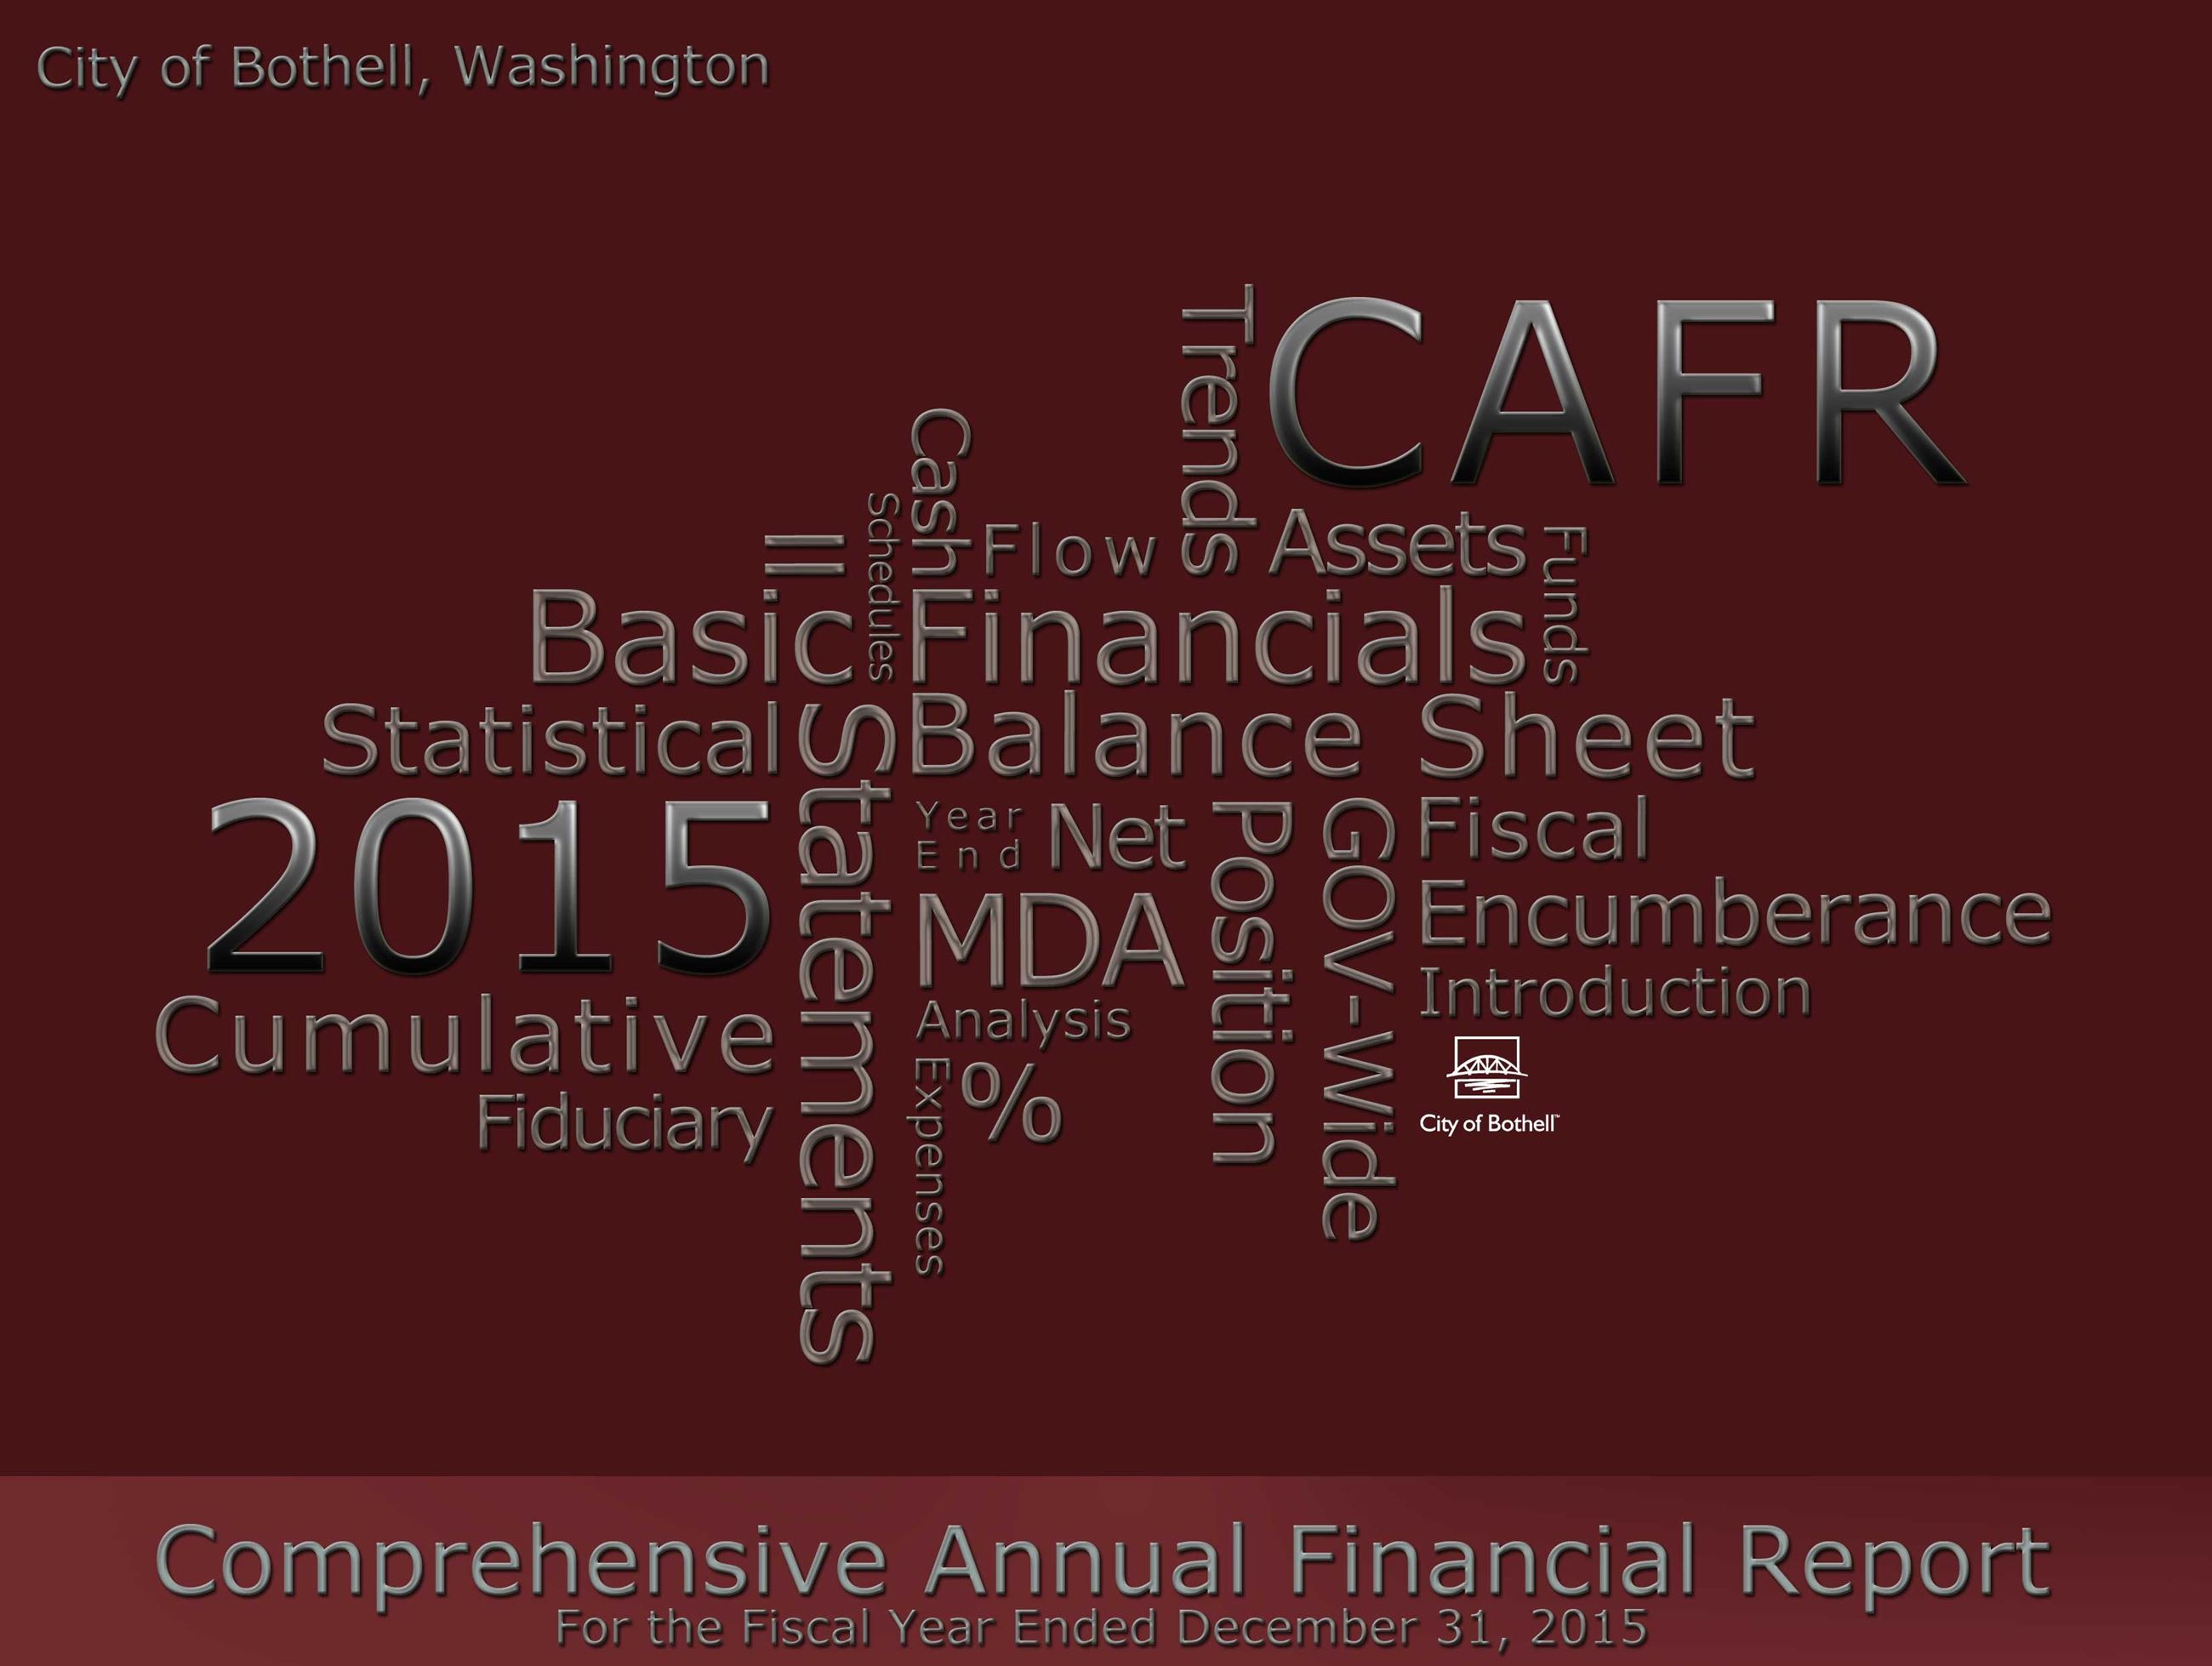 2015 Comprehensive Annual Financial Report Photo